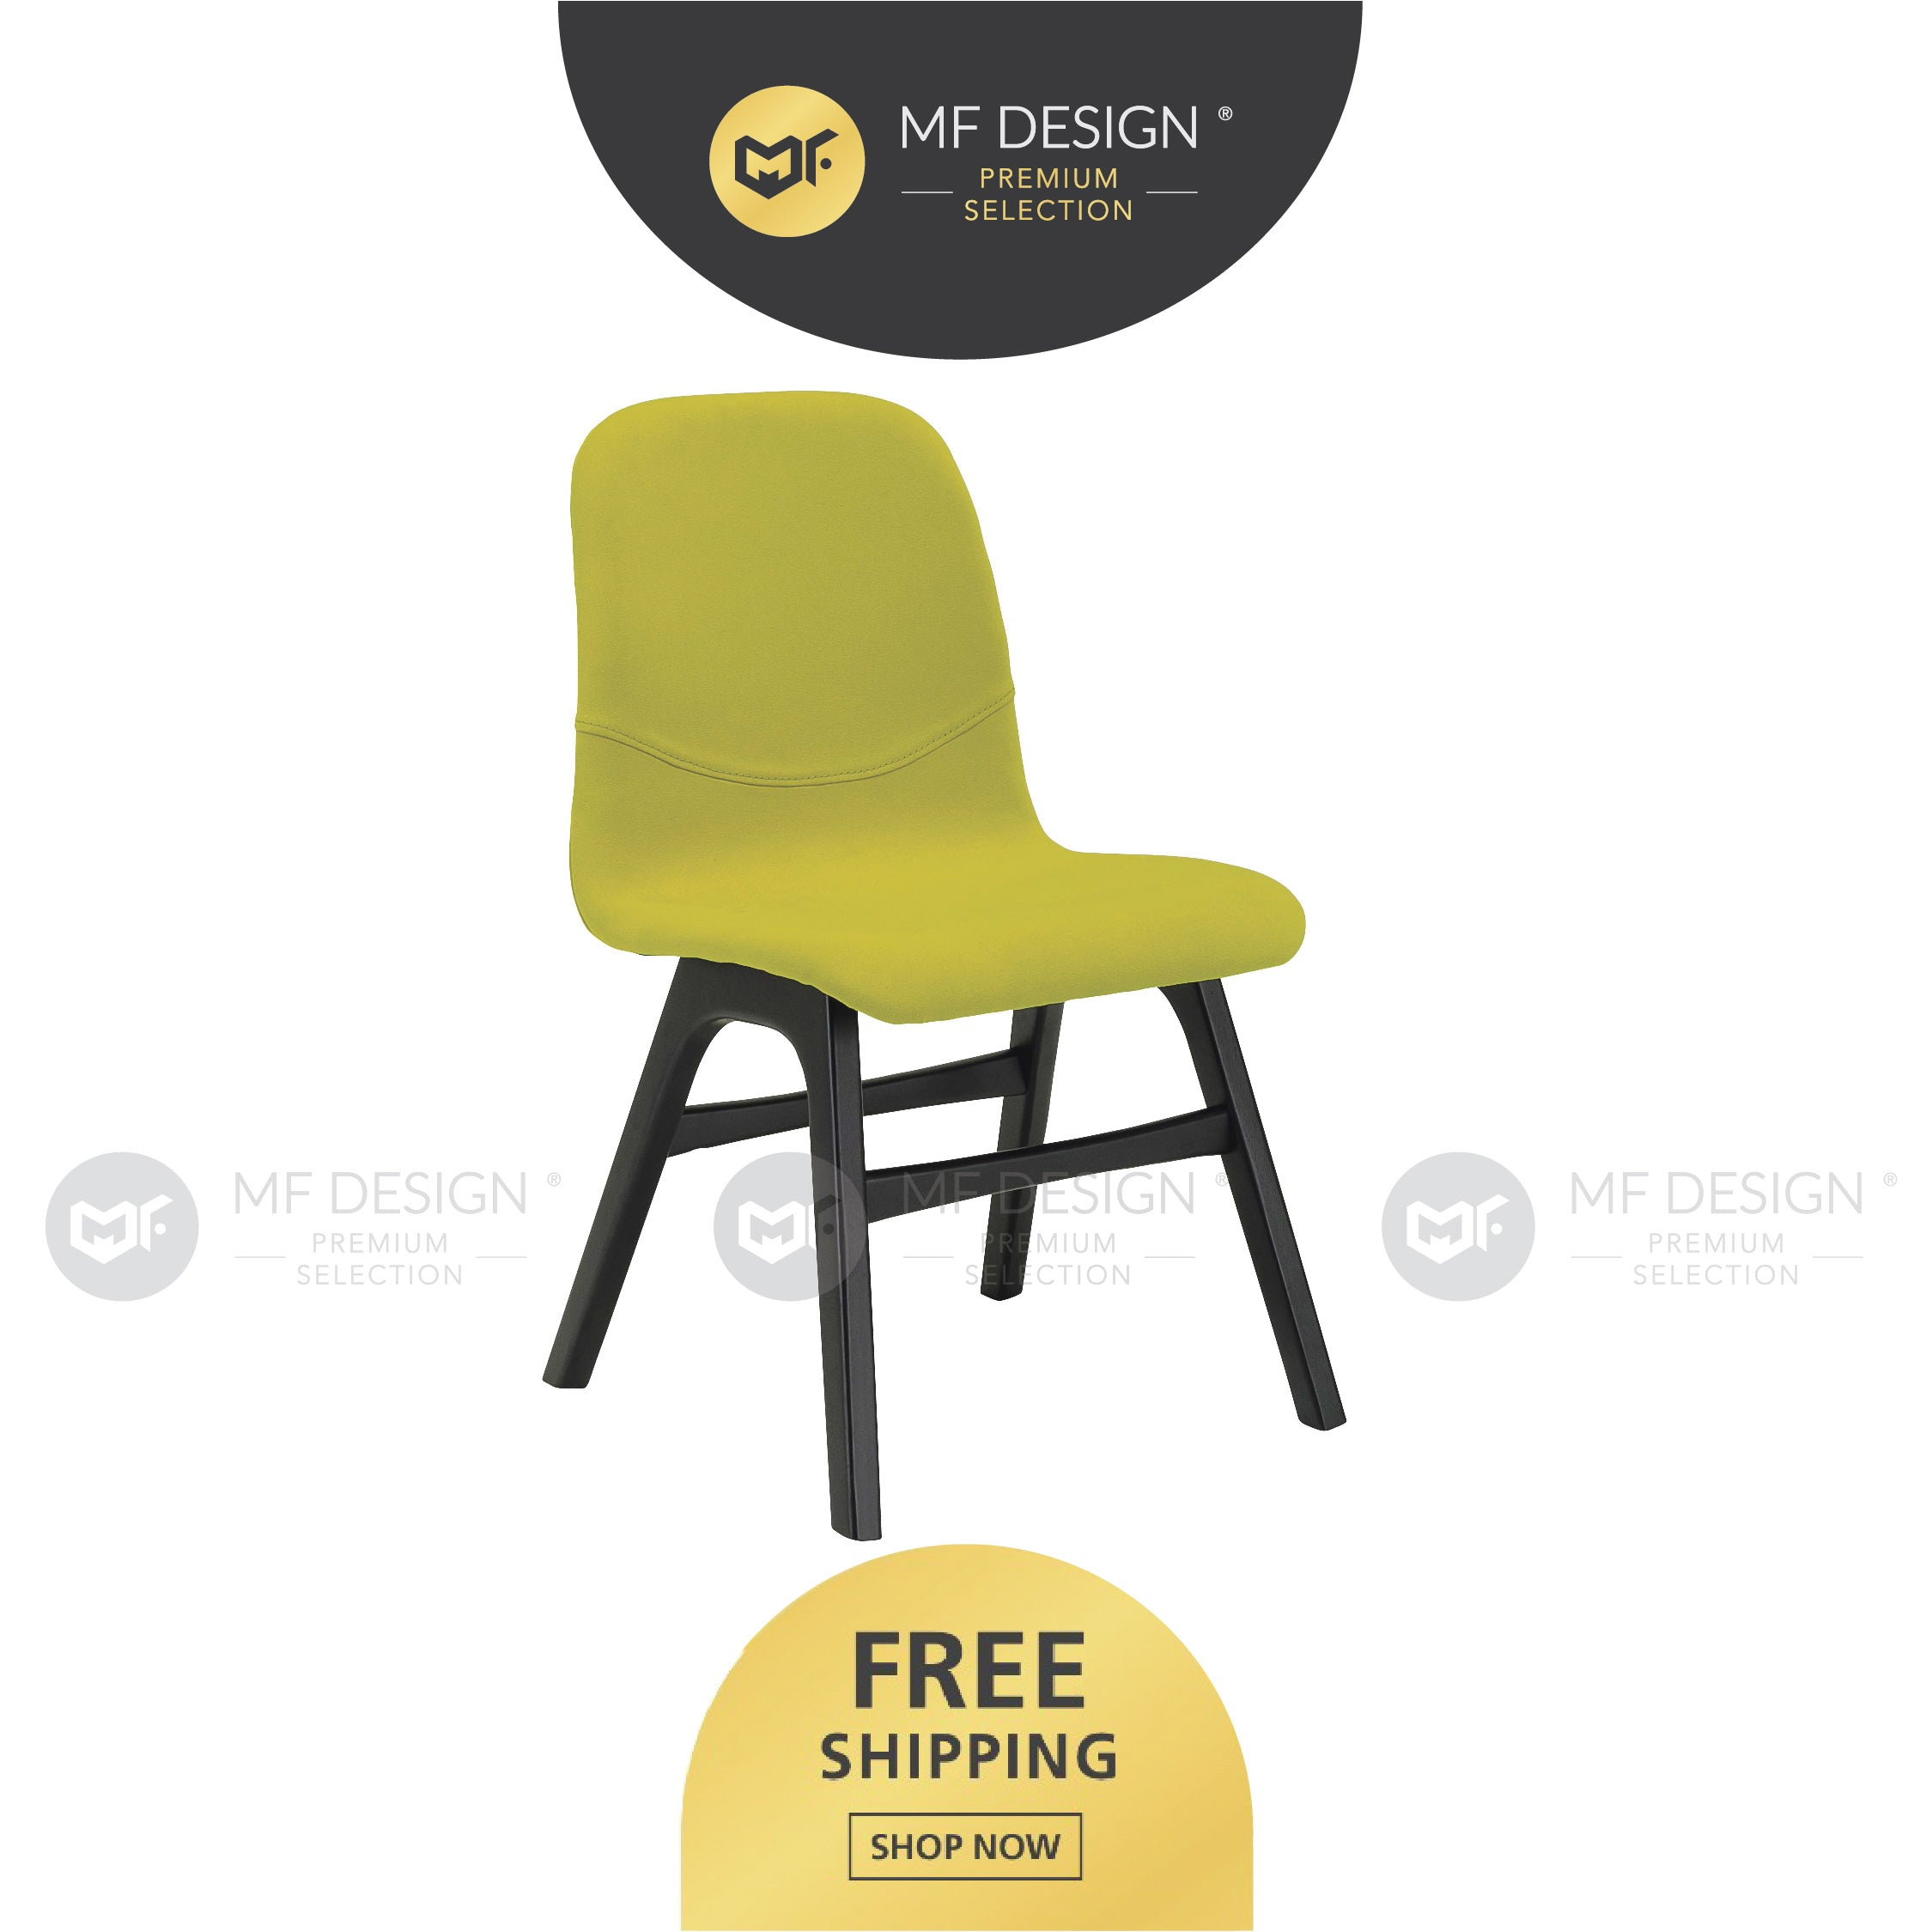 MFD Premium Alina Dining Chair / Wooden Chair / Solid Rubber Wood / Kerusi Makan Kayu Getah / Living Room / Scandinavian